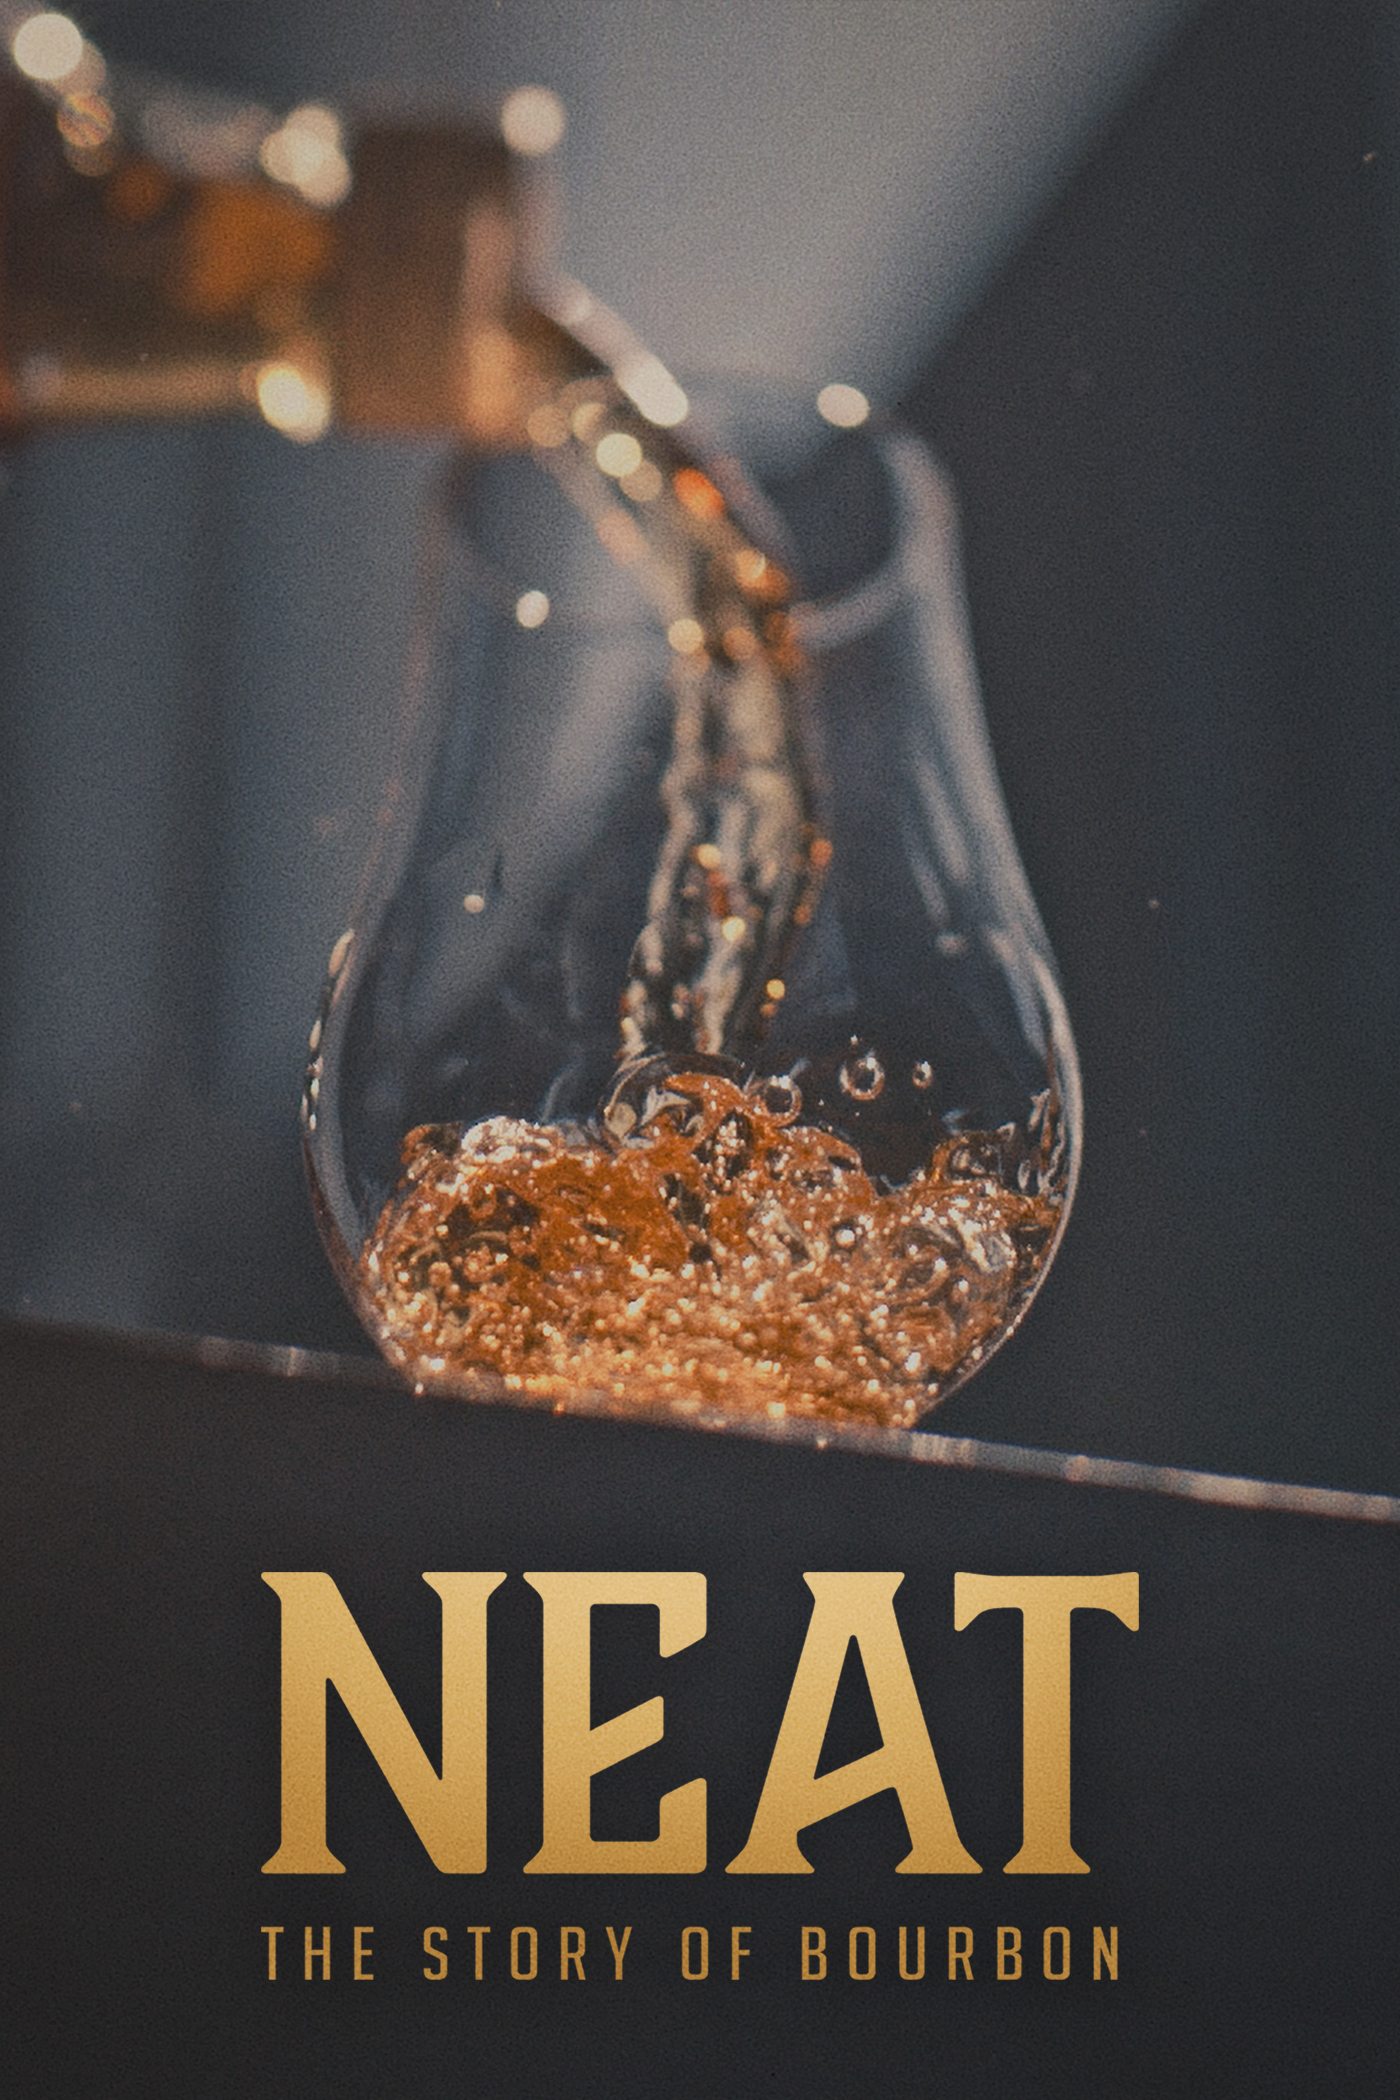 Neat: The Story of Bourbon (2018) - IMDb